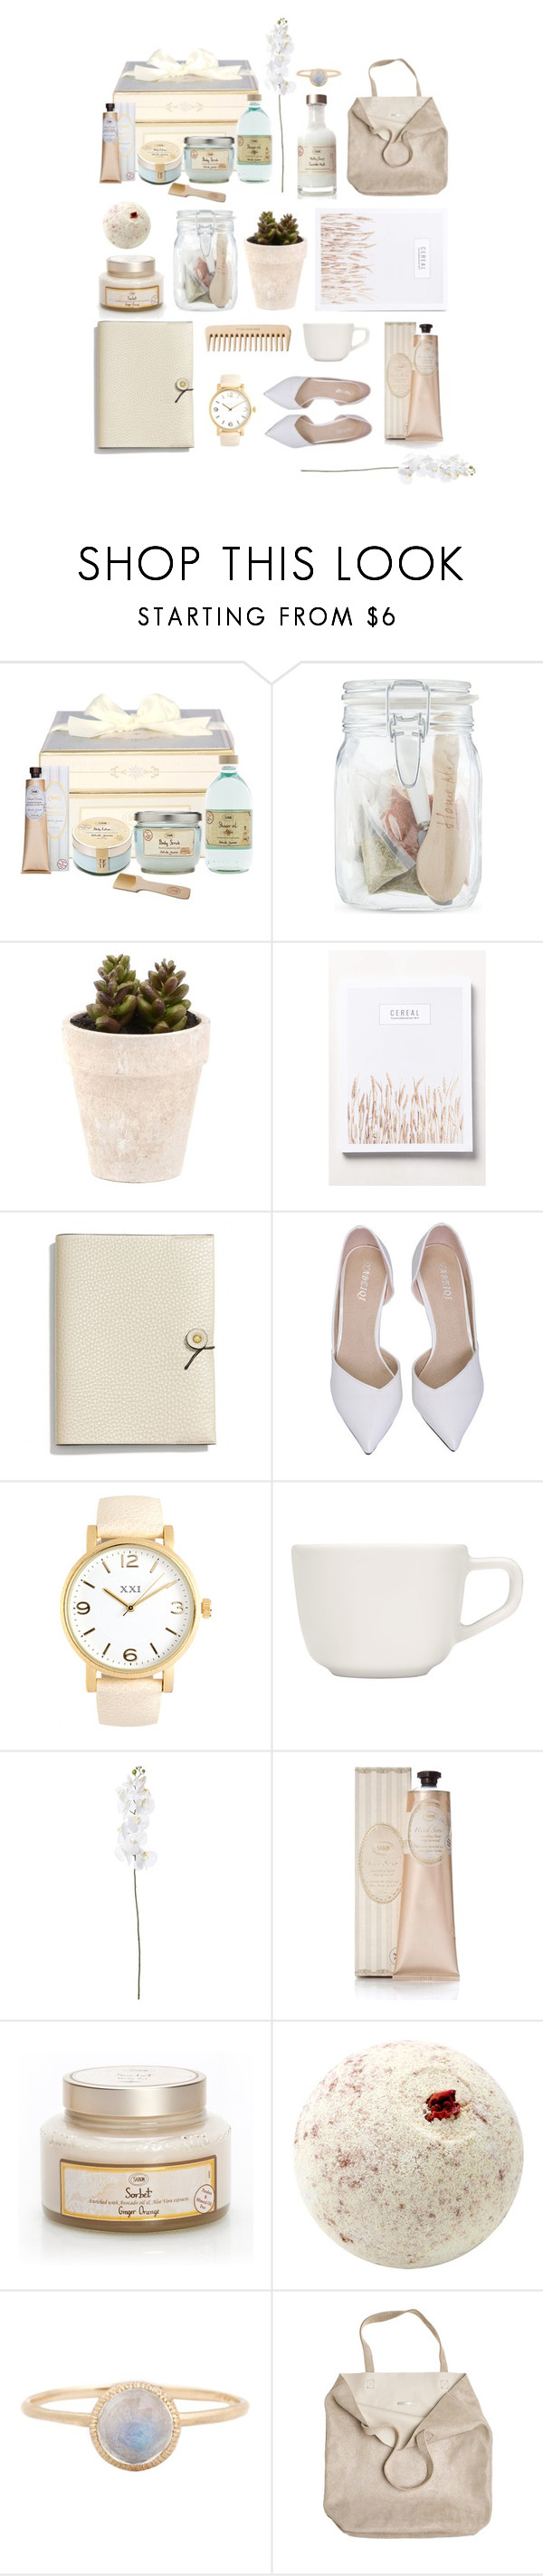 """37."" by sabon ❤ liked on Polyvore featuring Boska, Coach, The Body Shop, Forever 21, iittala, Monserat De Lucca, Beauty, polyvorecommunity and polyvoreeditorial"